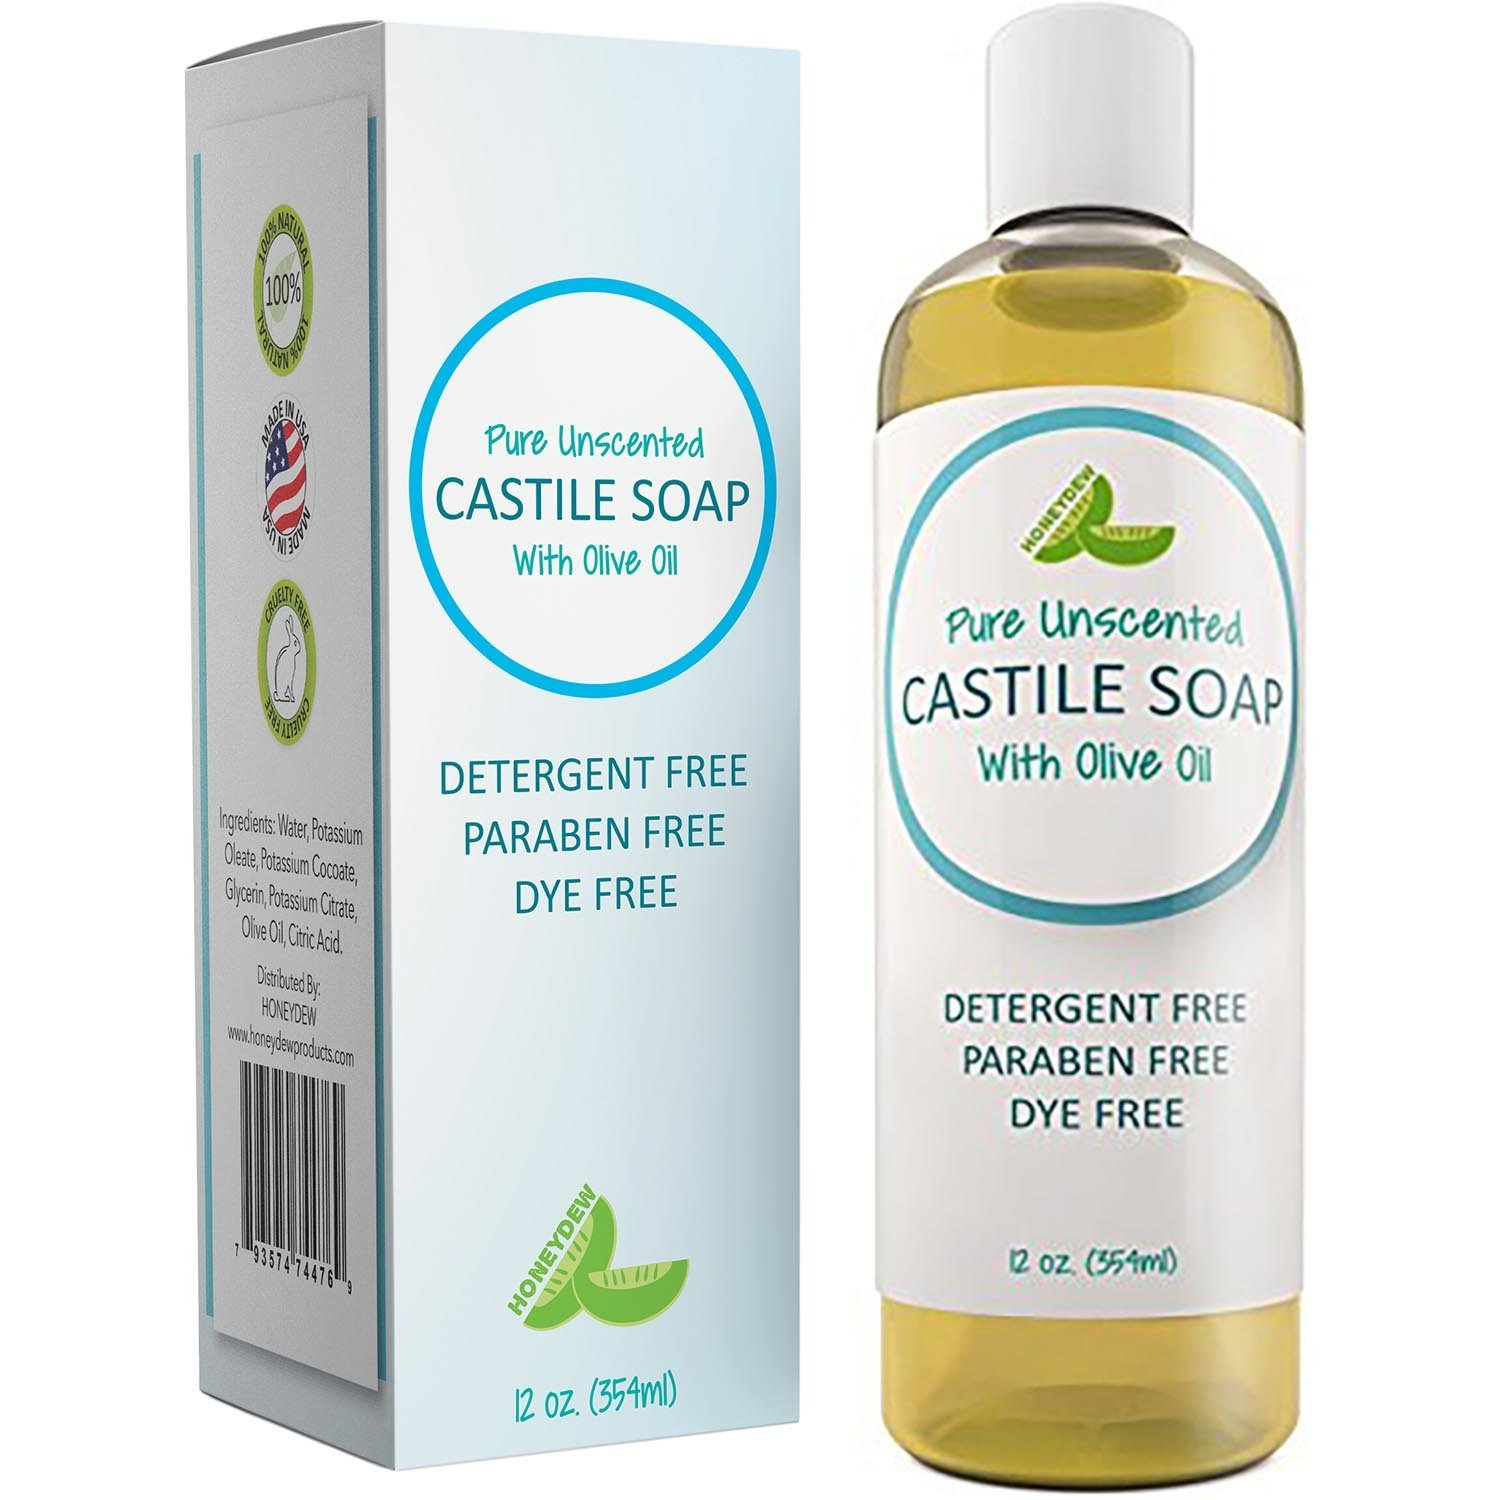 100% Pure Castile Soap Unscented Liquid Soap For Body Or Home Use With Olive Oil And Glycerin – Nourishing Natural Skin Care – All Purpose Cleaner - Chemical Free & SLS Free Soap - Vegan Friendly